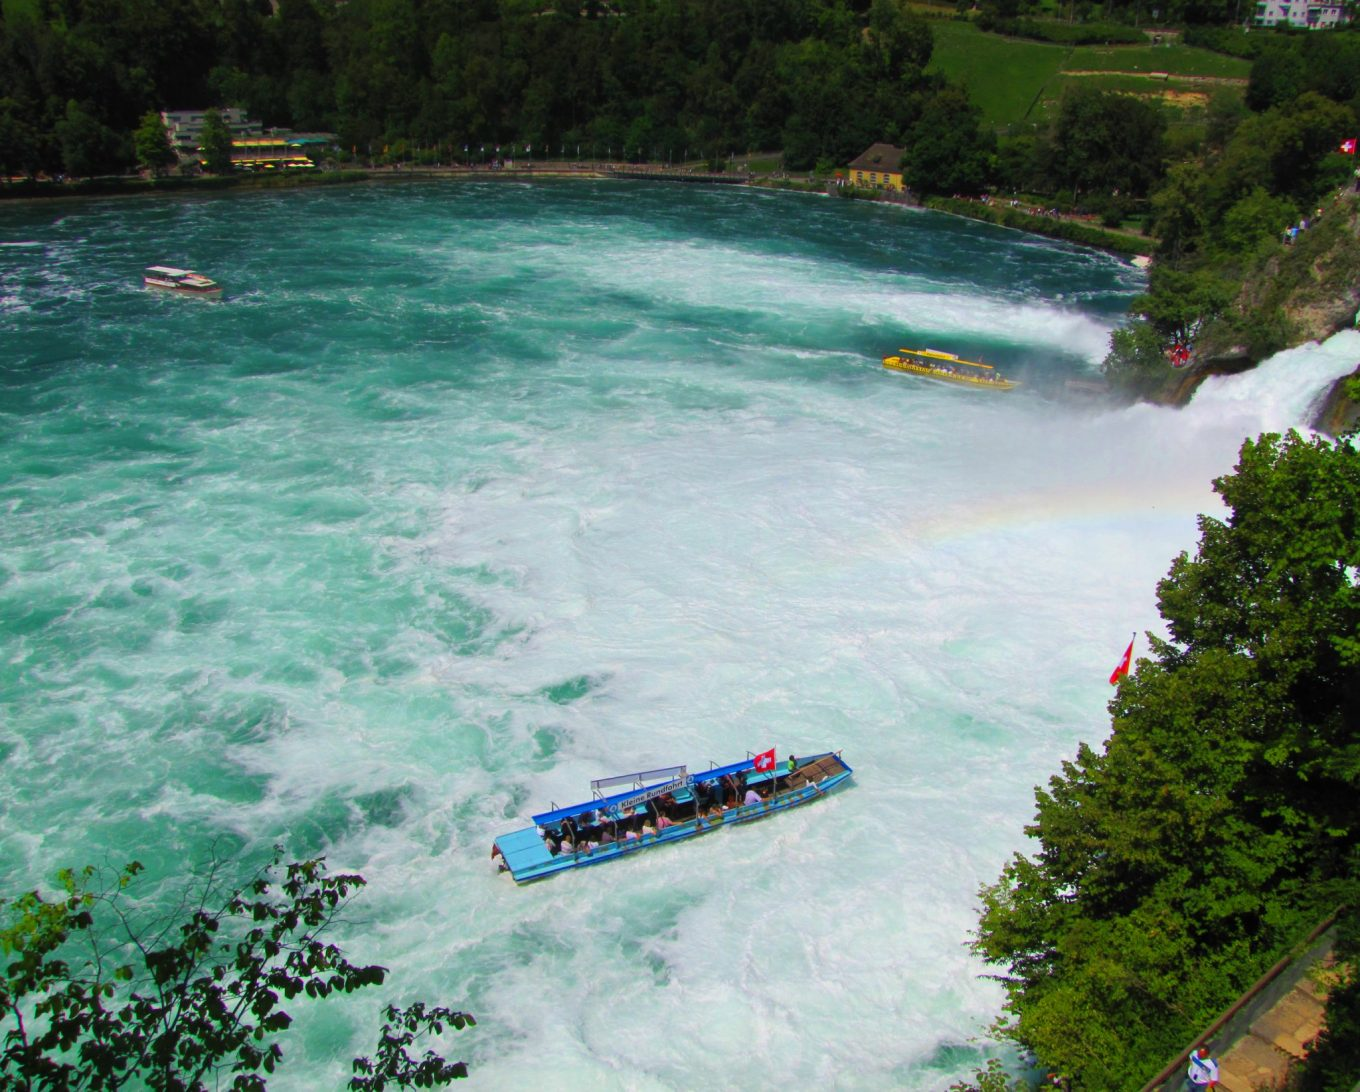 The sound of water - Rhine Falls in Switzerland!